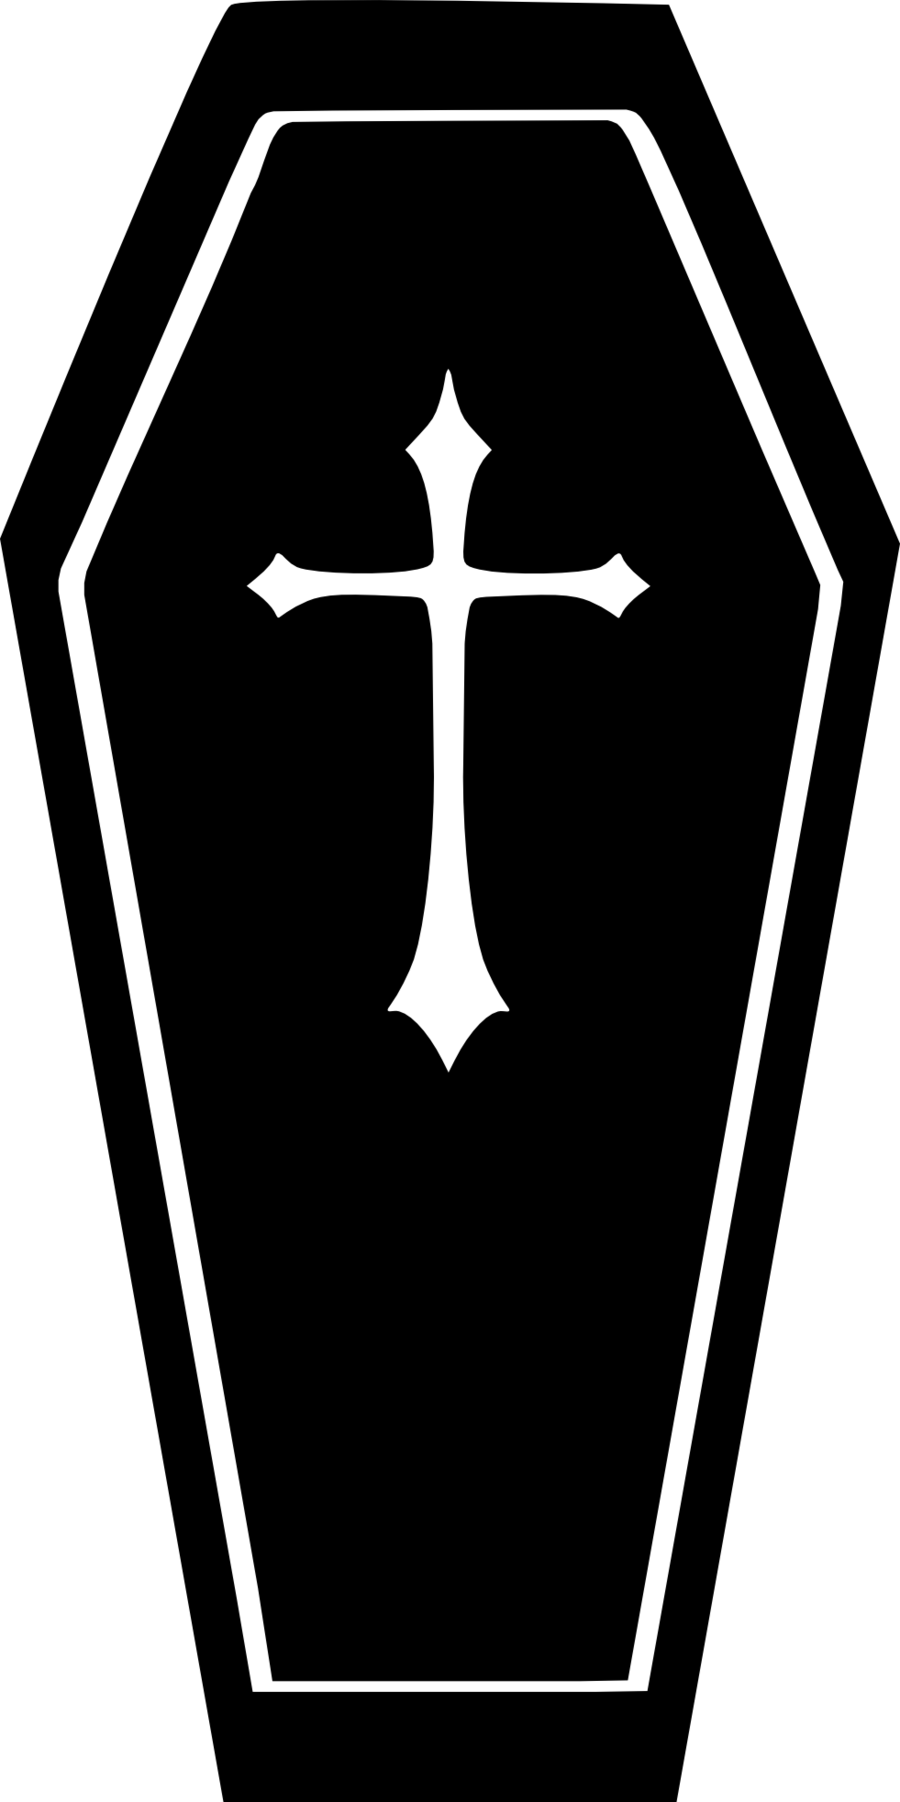 Tombstone cross clipart graphic free stock Coffin Silhouette - ImgMob | final resting place | Pinterest graphic free stock